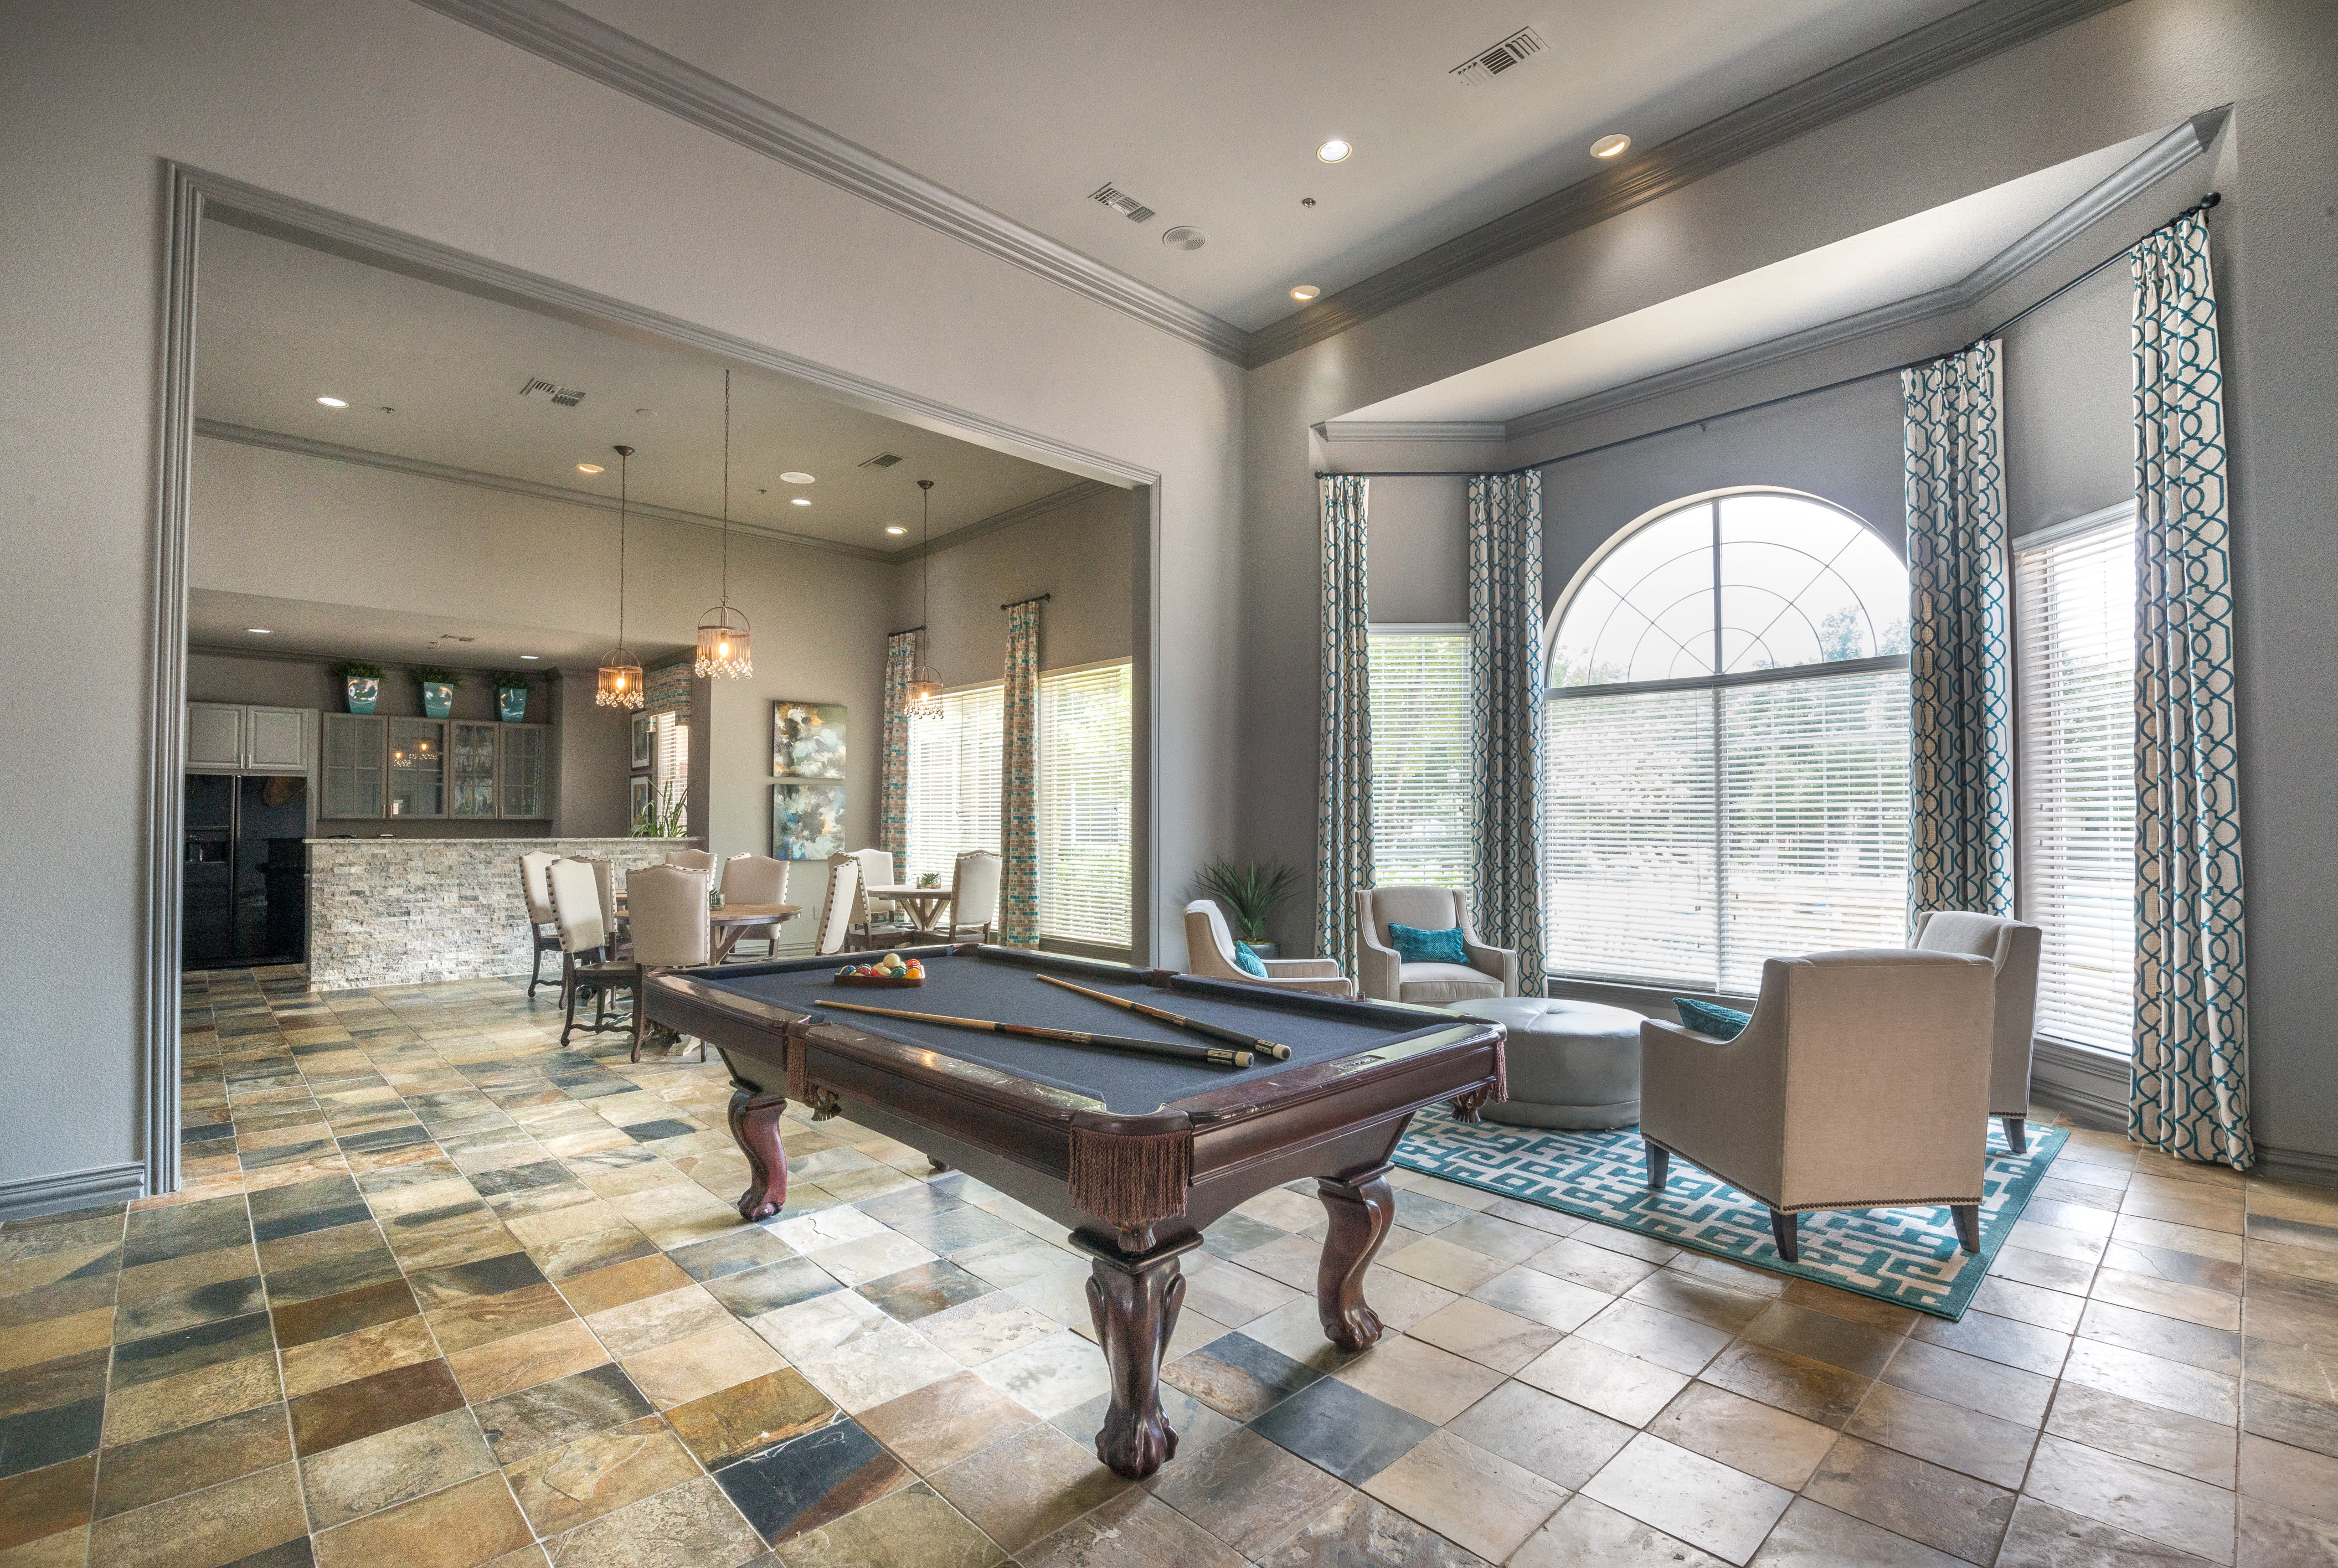 Enjoy a well-equipped fitness center at 23Hundred at Ridgeview in Plano, Texas